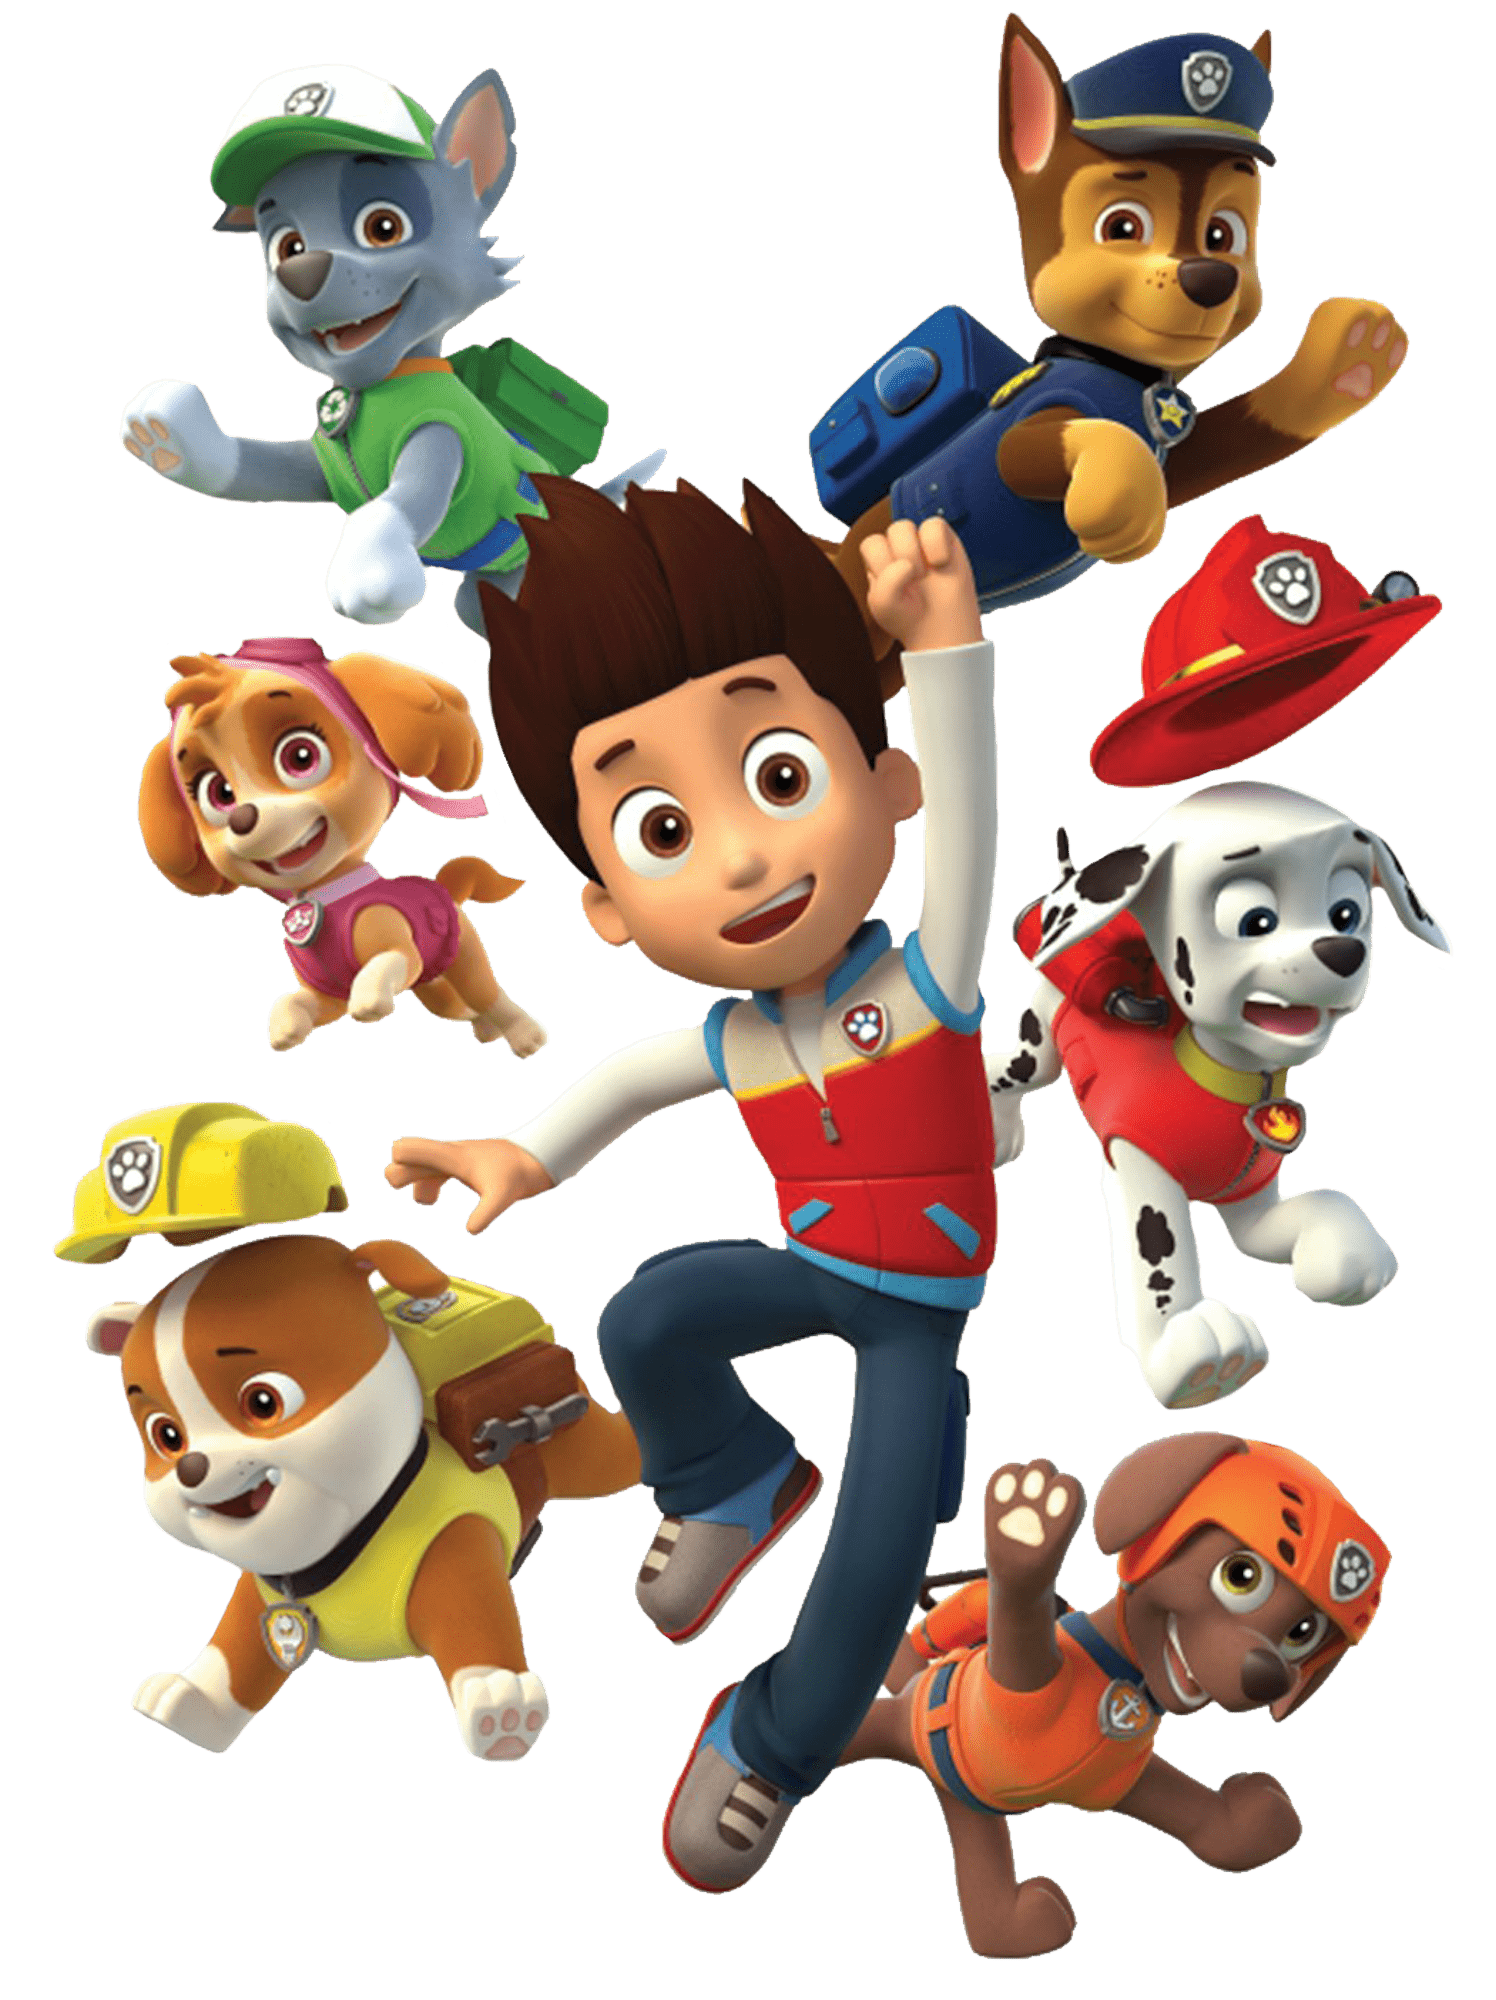 Paw patrol png clipart. Ryder and his dogs